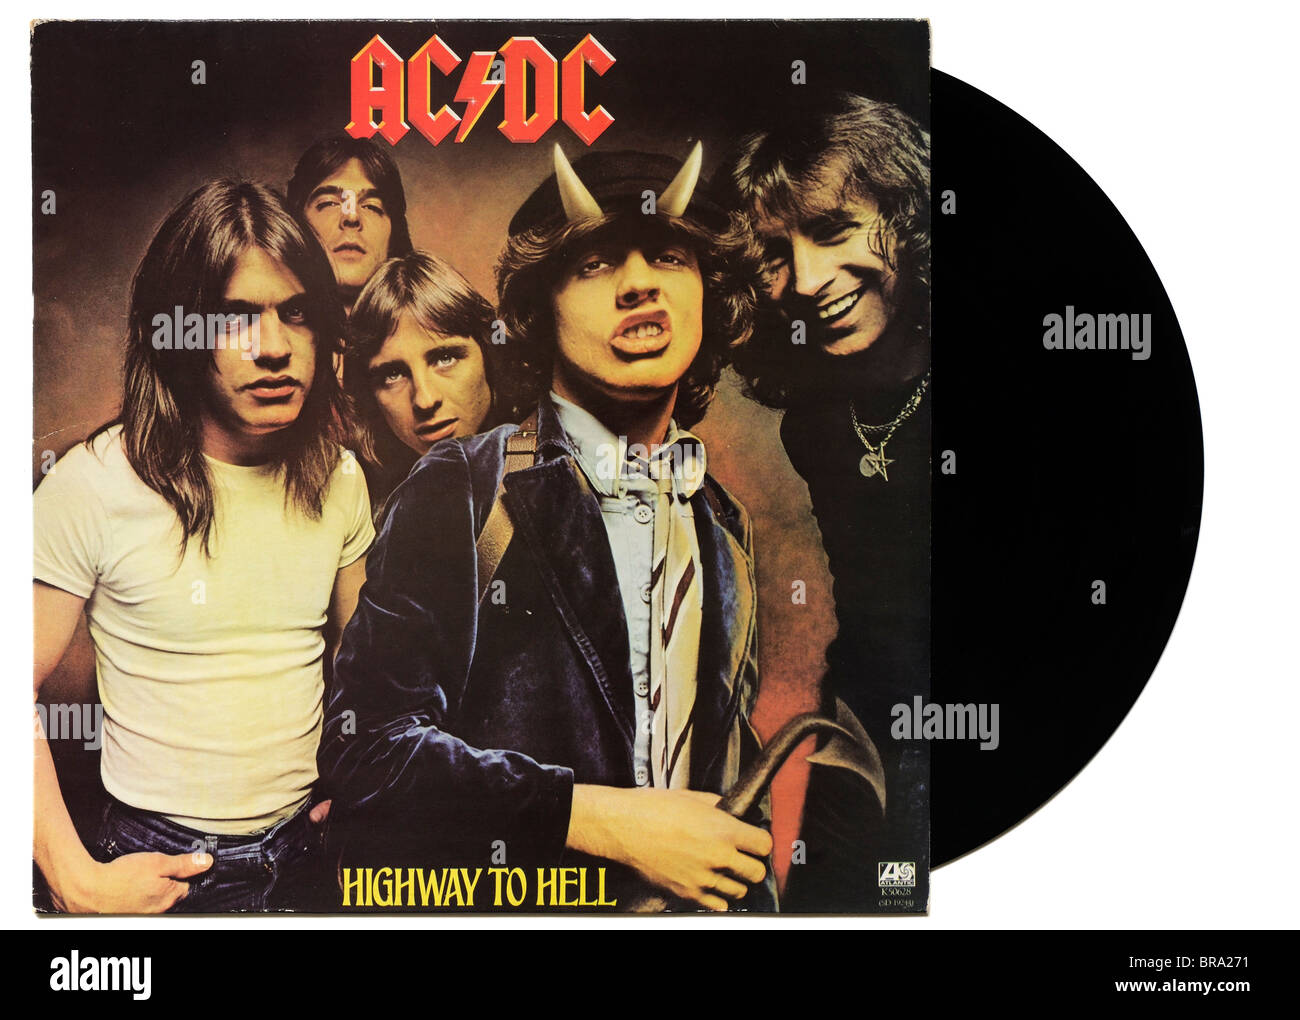 AC/DC Highway to Hell album - Stock Image